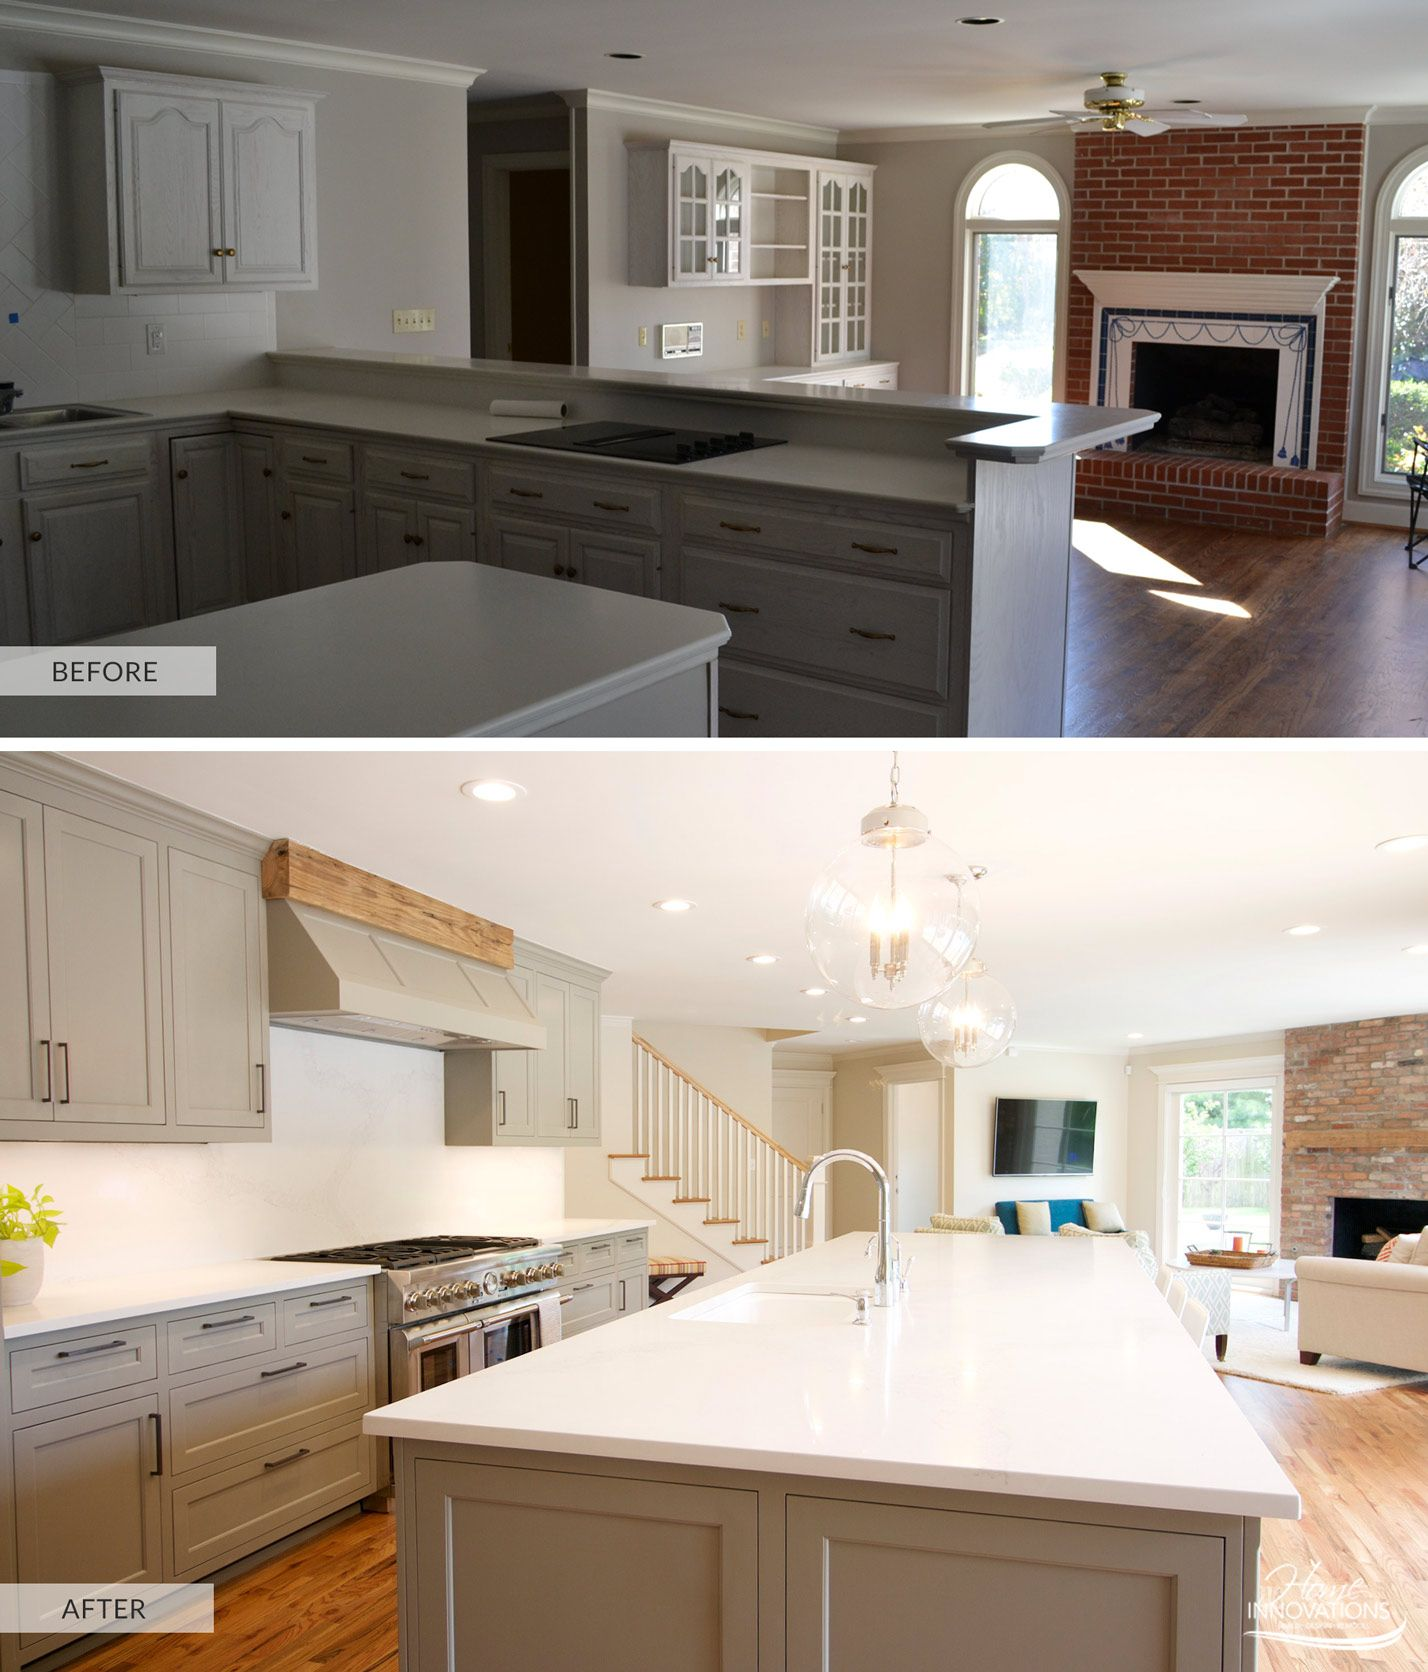 Tulsa, OK - Kitchen With Caesarstone